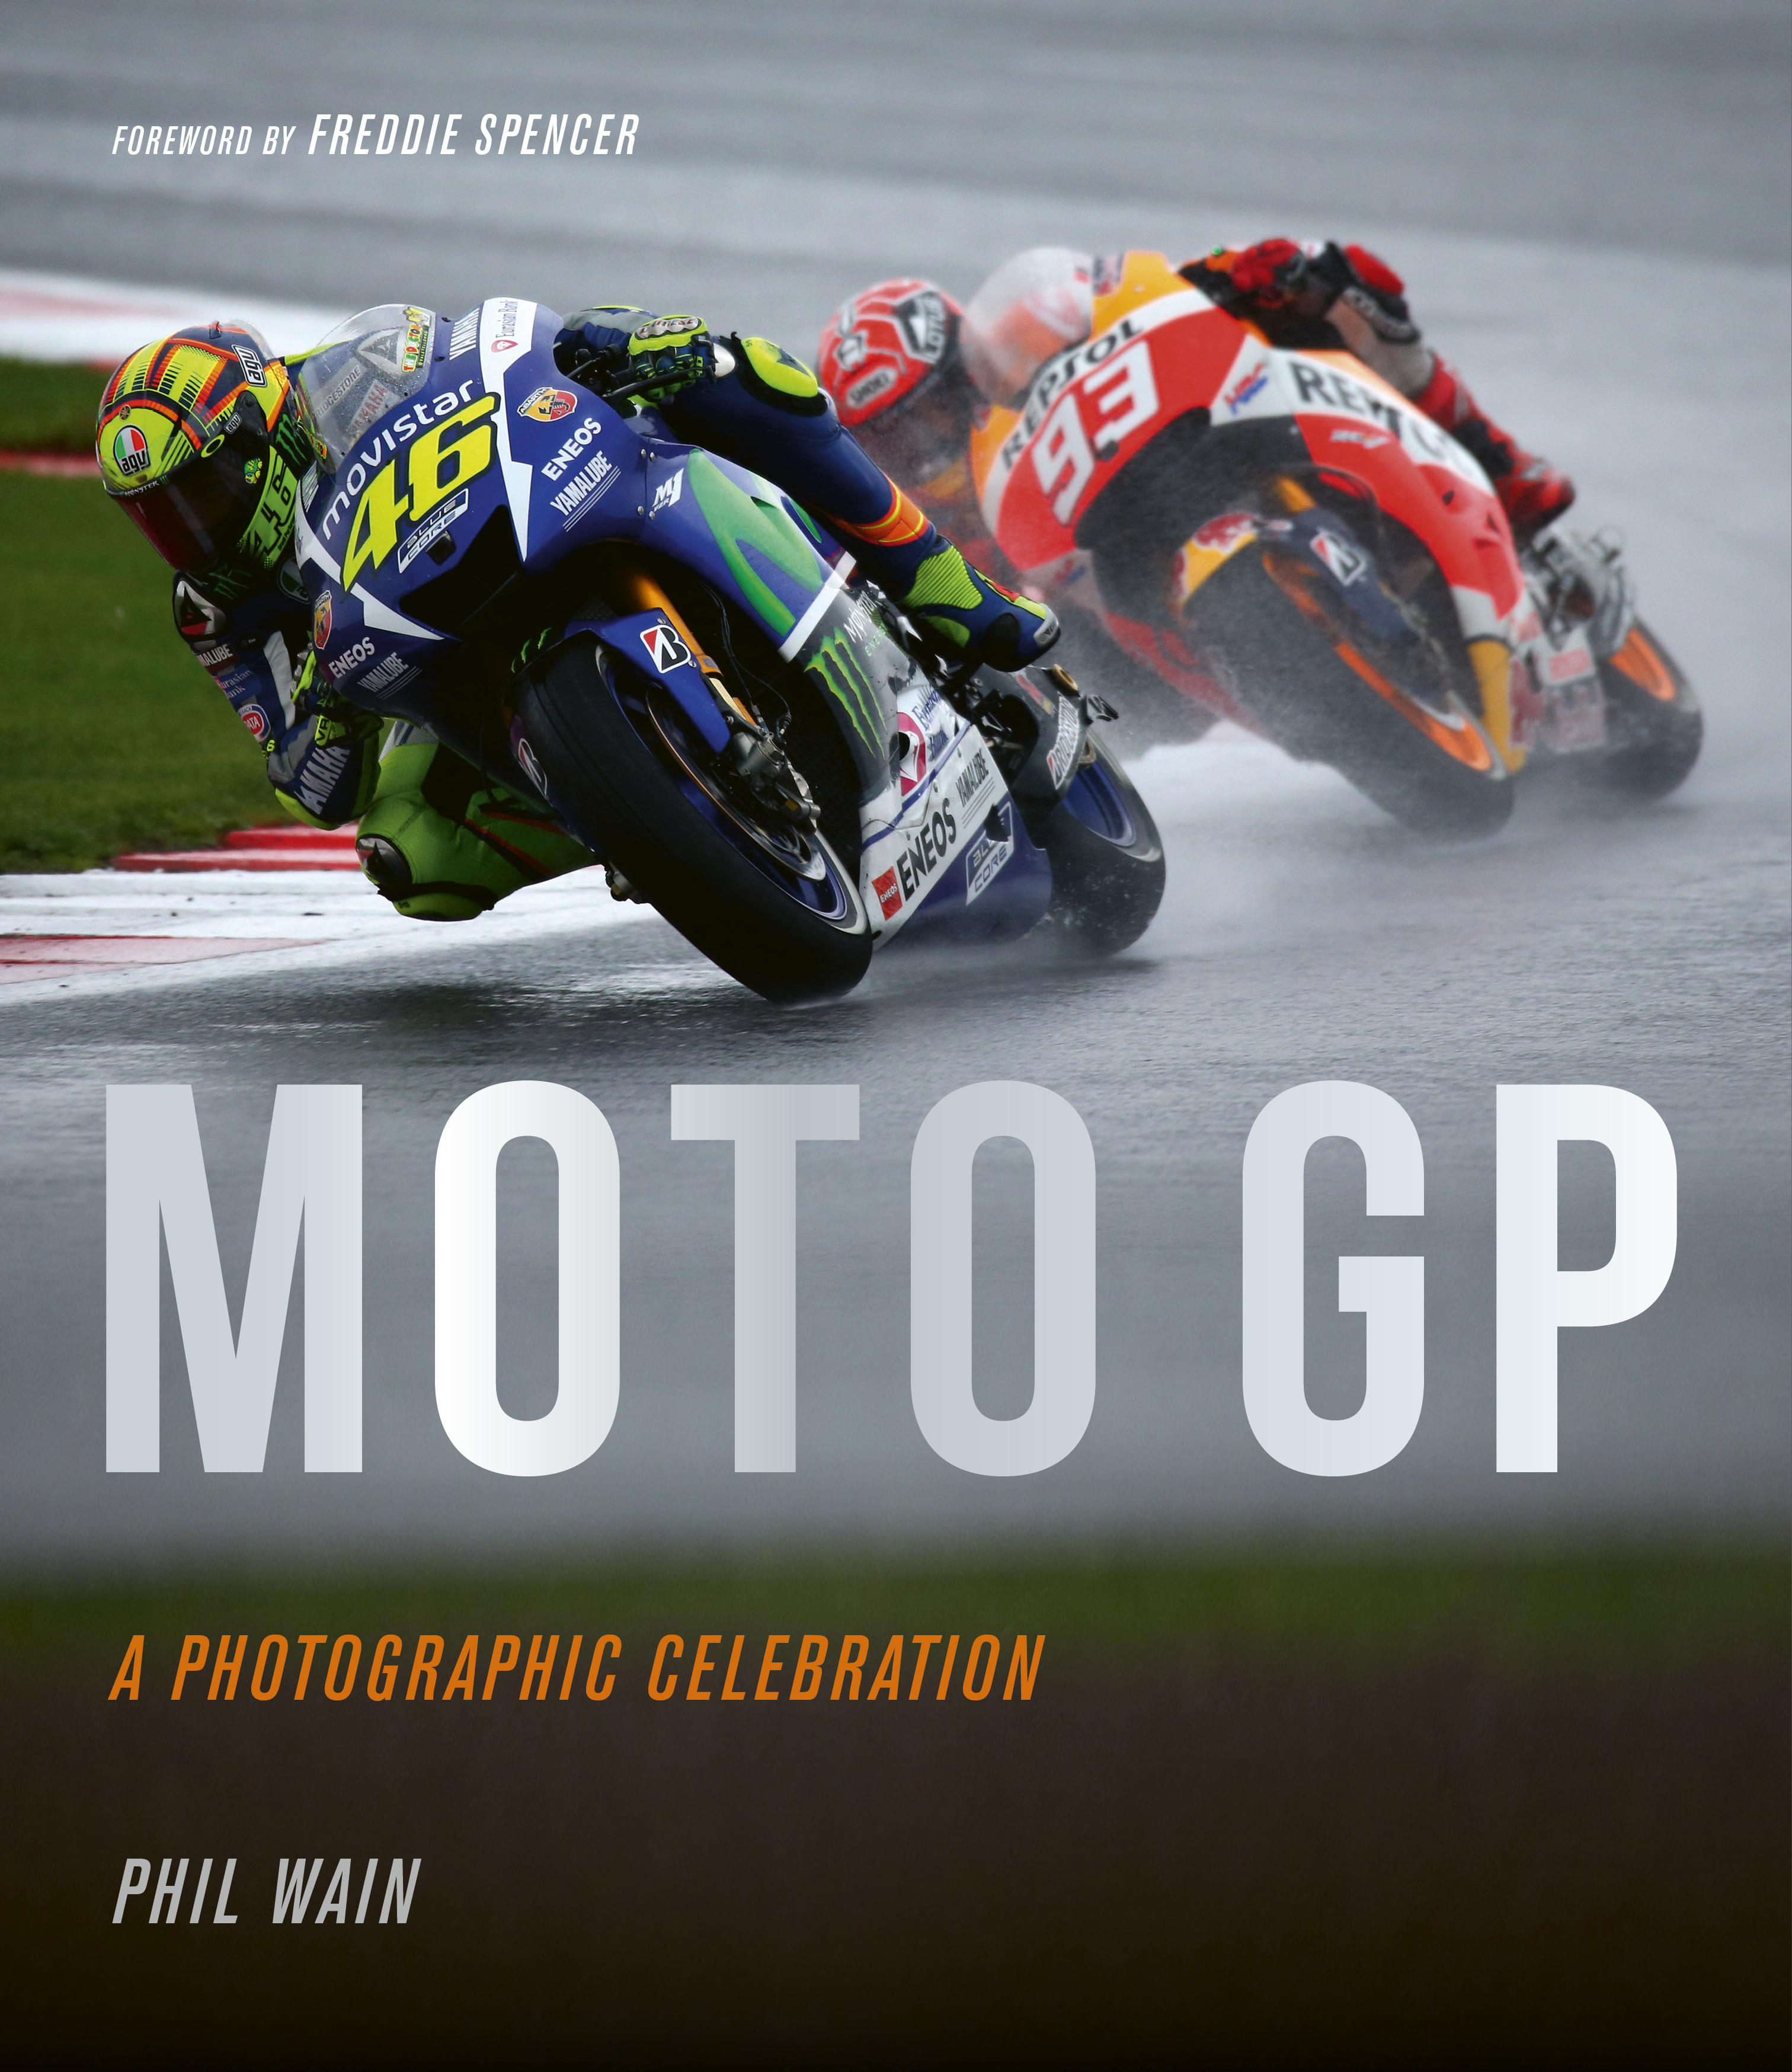 "Moto GP †"" a photographic celebration"